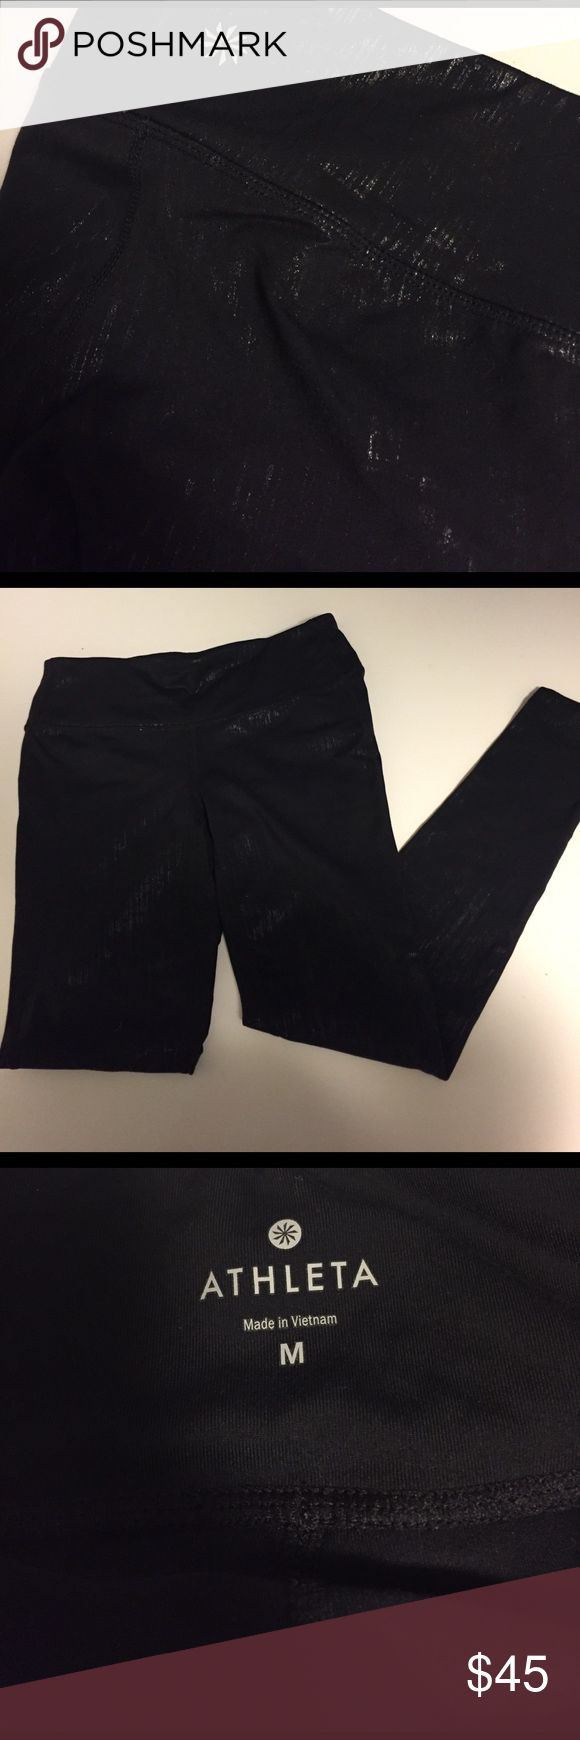 Like new Athleta spandex pants black w/gold detail Worn only a few times, black with gold detail, can be worn workout or casual! size medium, extremely light pilling in upper thigh area. Worn maybe 3 times. Athleta Pants Leggings